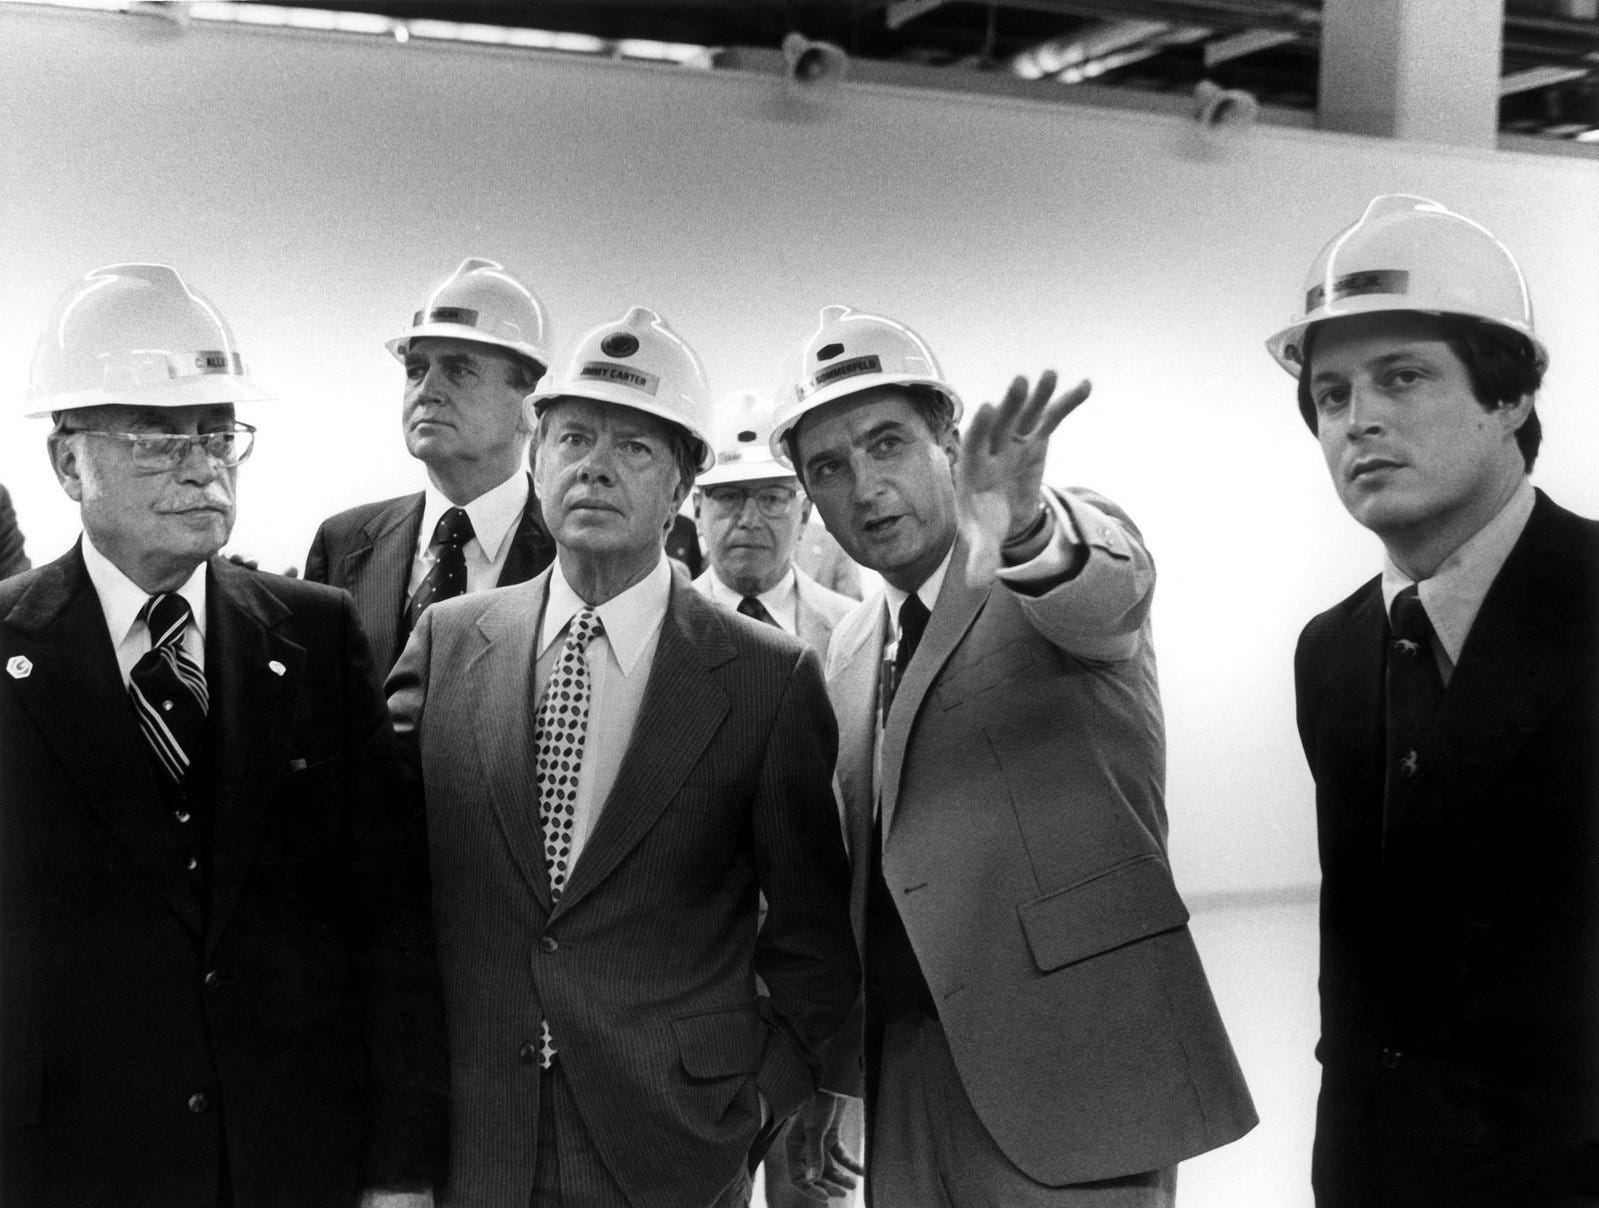 President Jimmy Carter visits Oak Ridge on May 22, 1978, accompanied by U.S. Rep. Al Gore, far right. Talking to the President is Union Carbide executive Ken Sommerfeld. (Department of Energy)